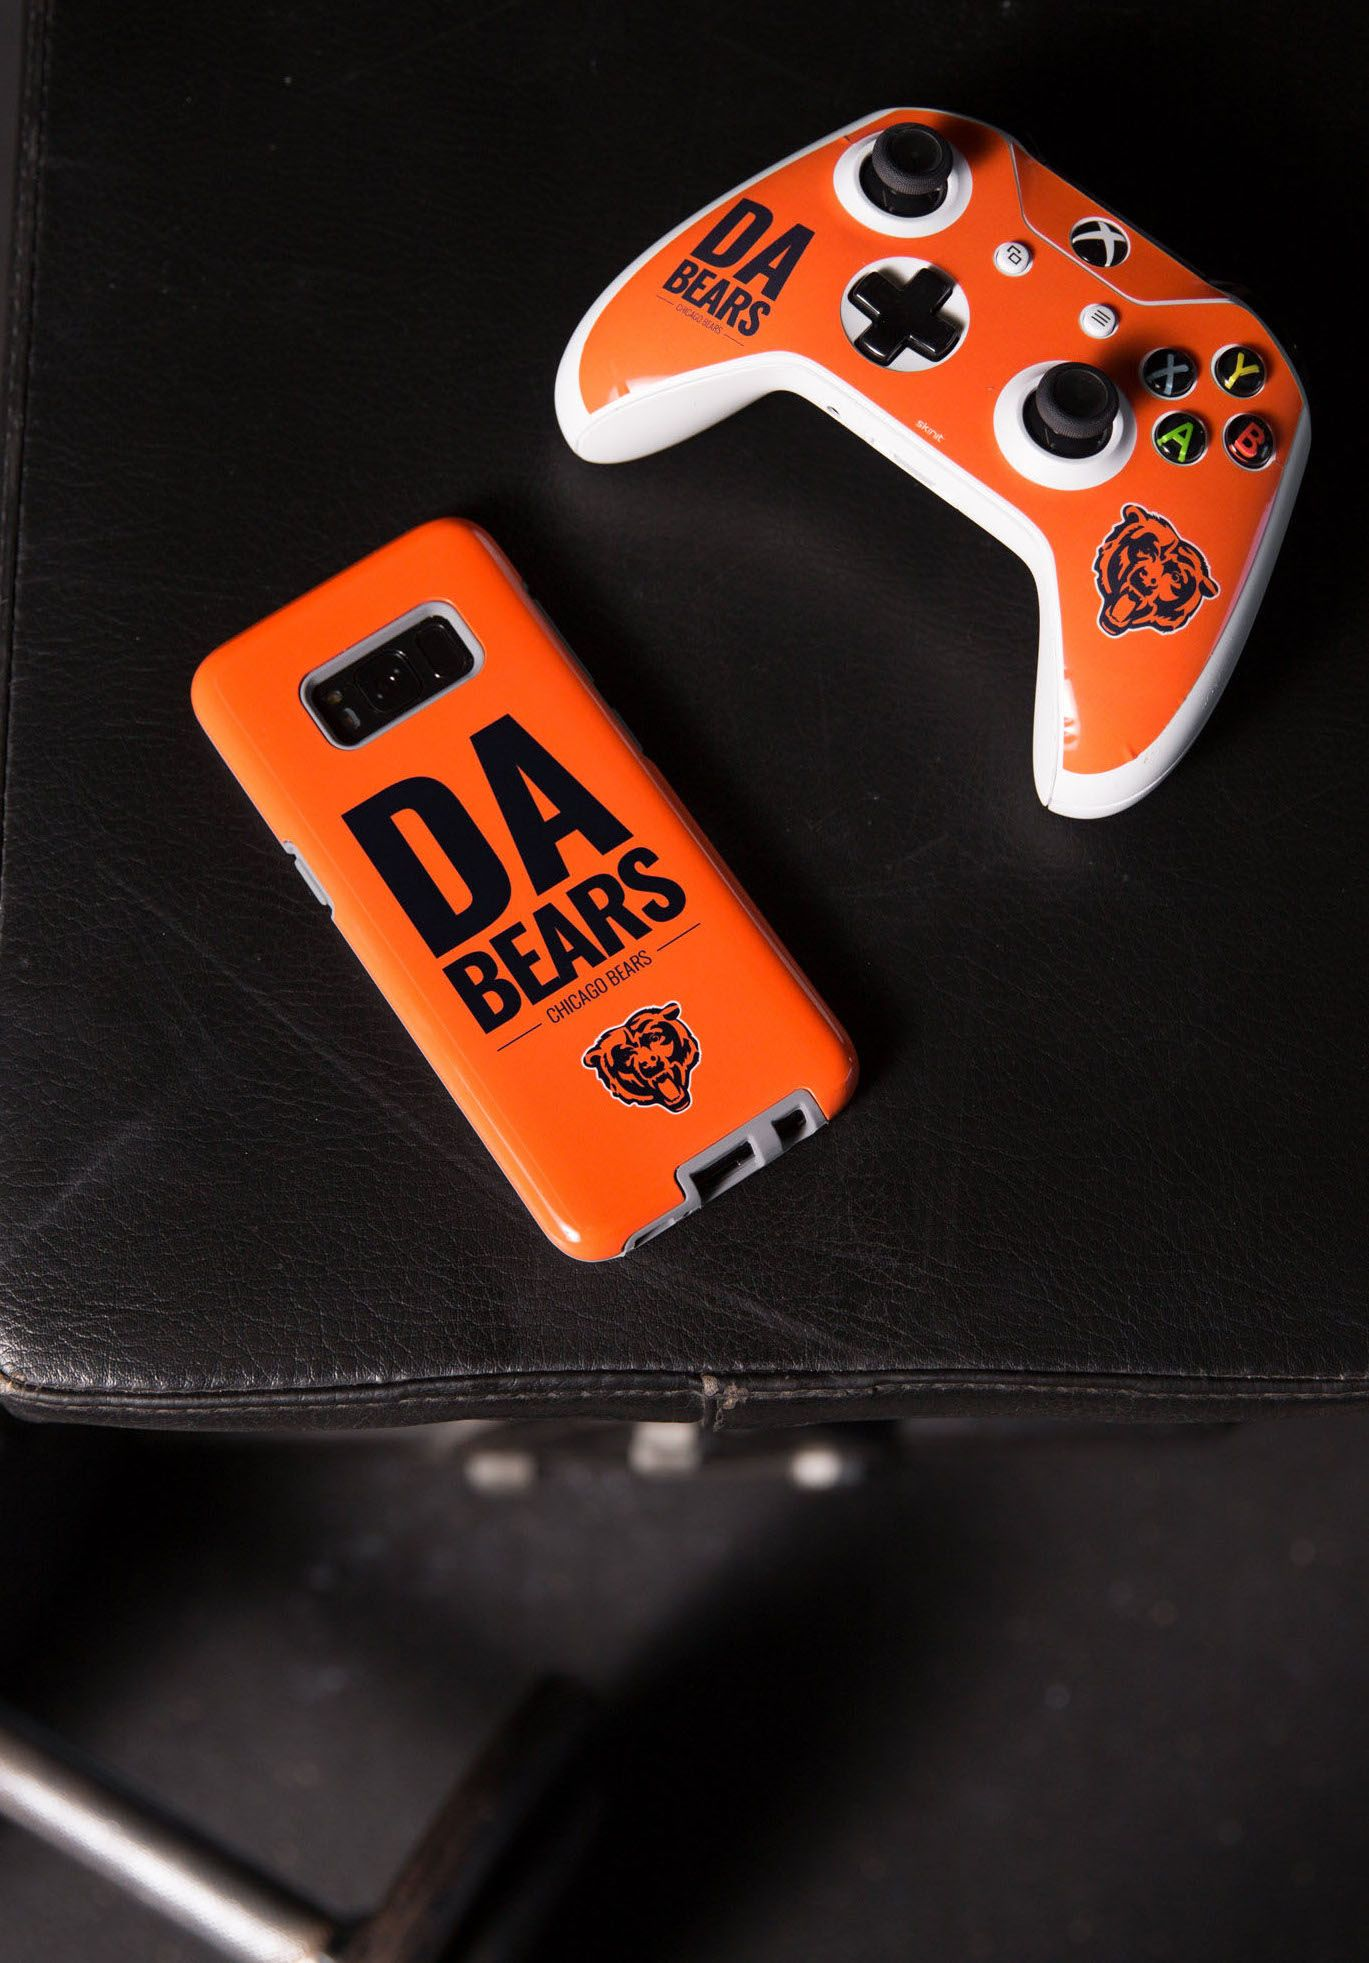 Get Your Game On Bears Dabears Xbox Console Controller Controllerskins Nfl Football Gamingskins Nfl Teams Nfl Team Slogans